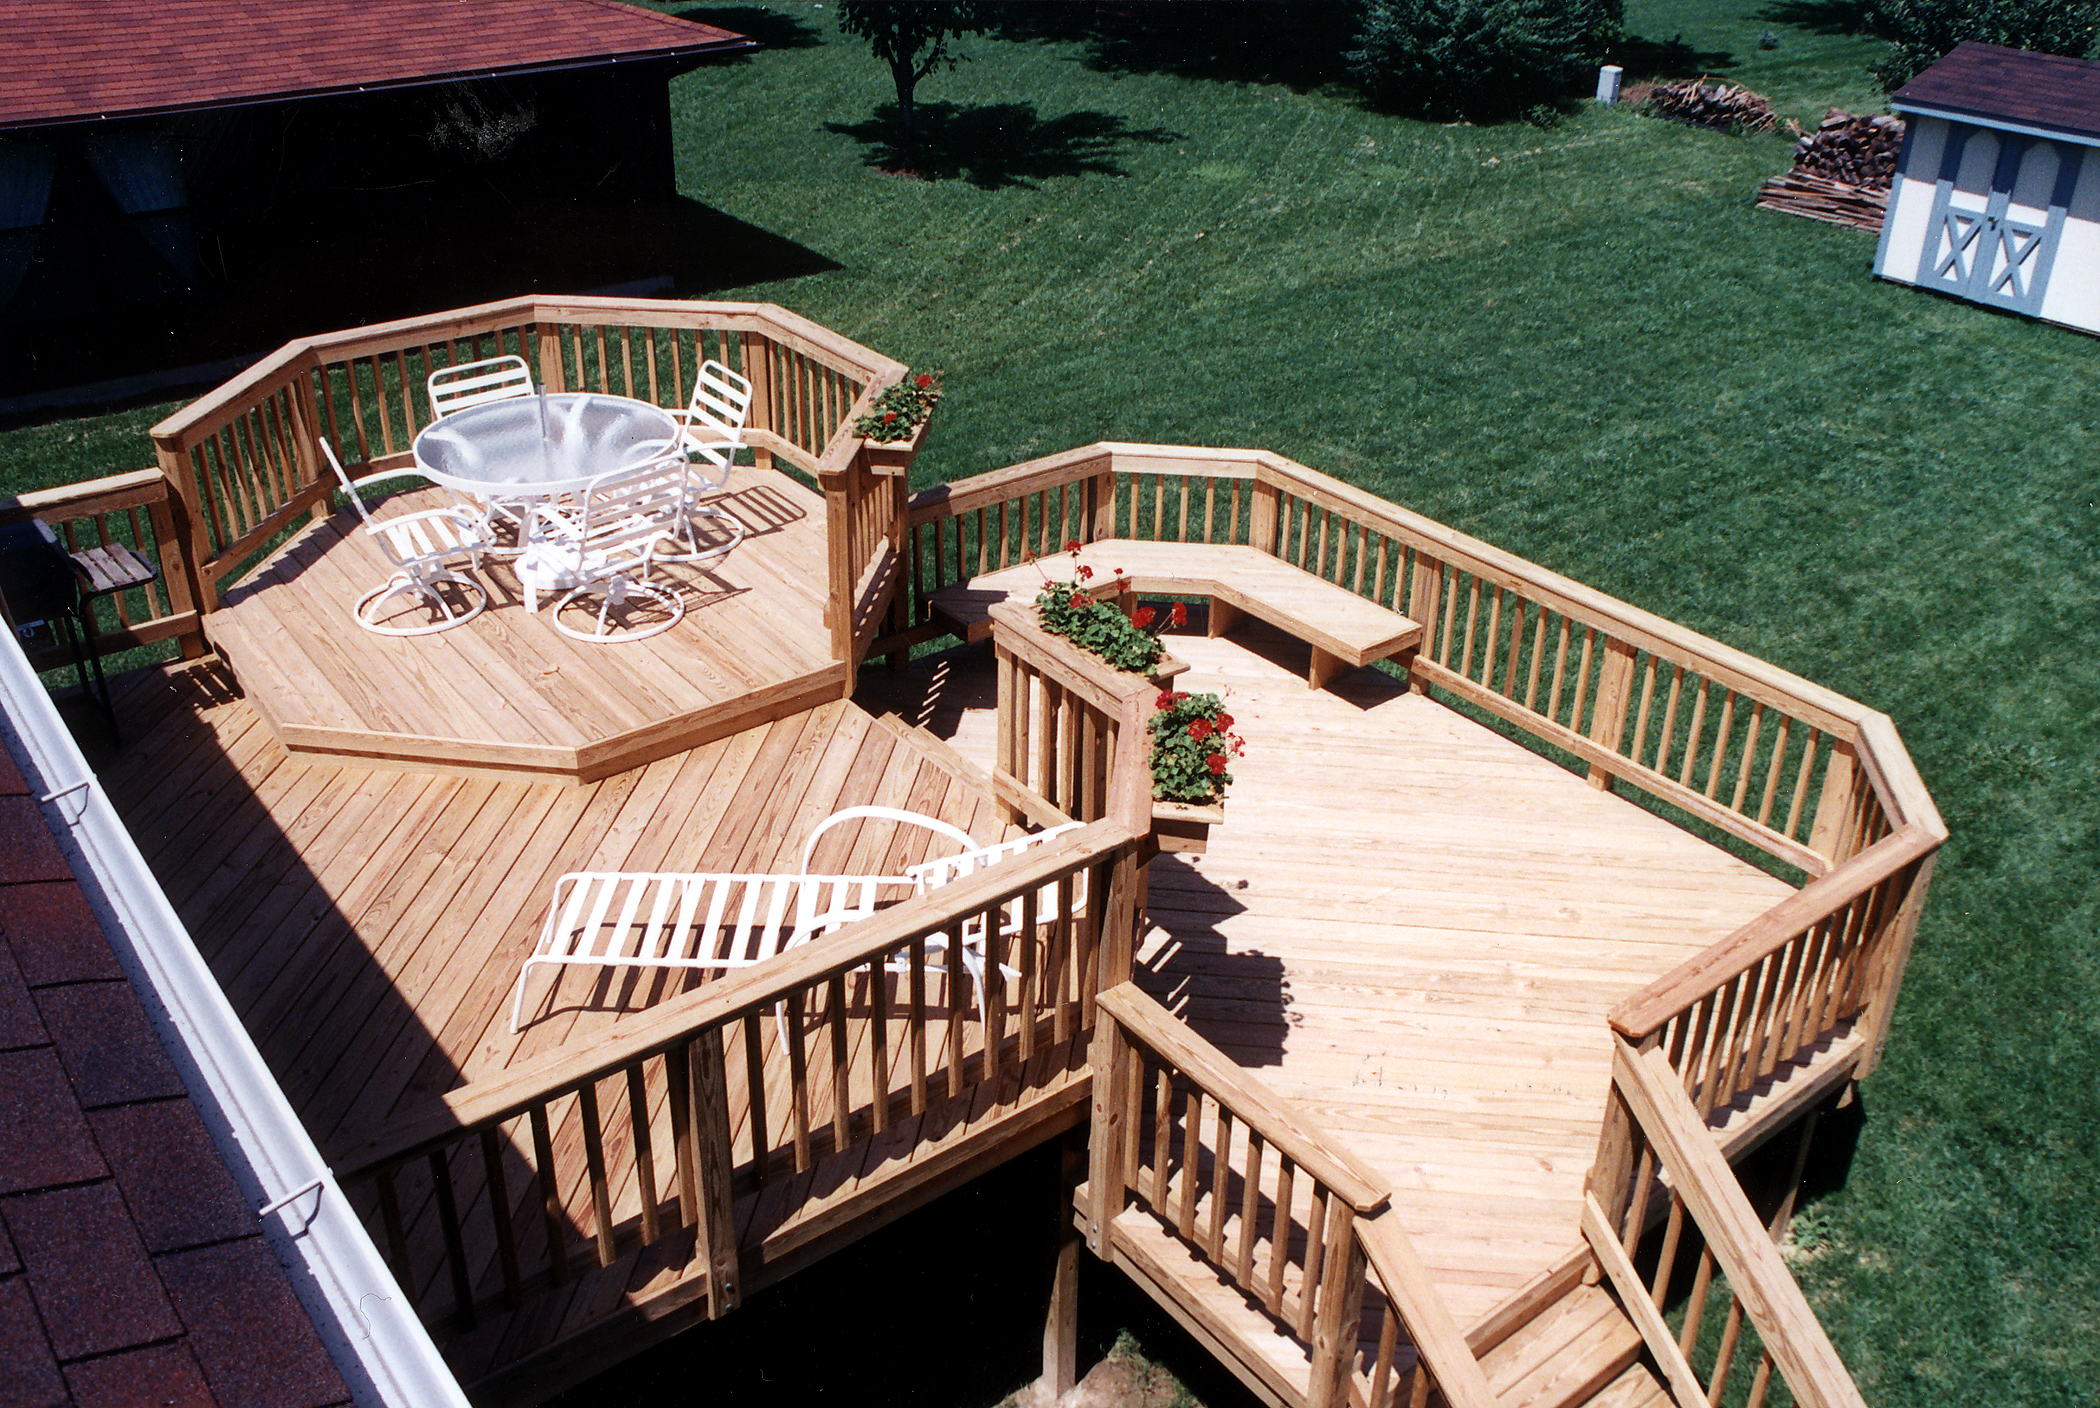 Outdoor Living St. Louis | St. Louis decks, screened ... on Wood Deck Ideas For Backyard id=56677